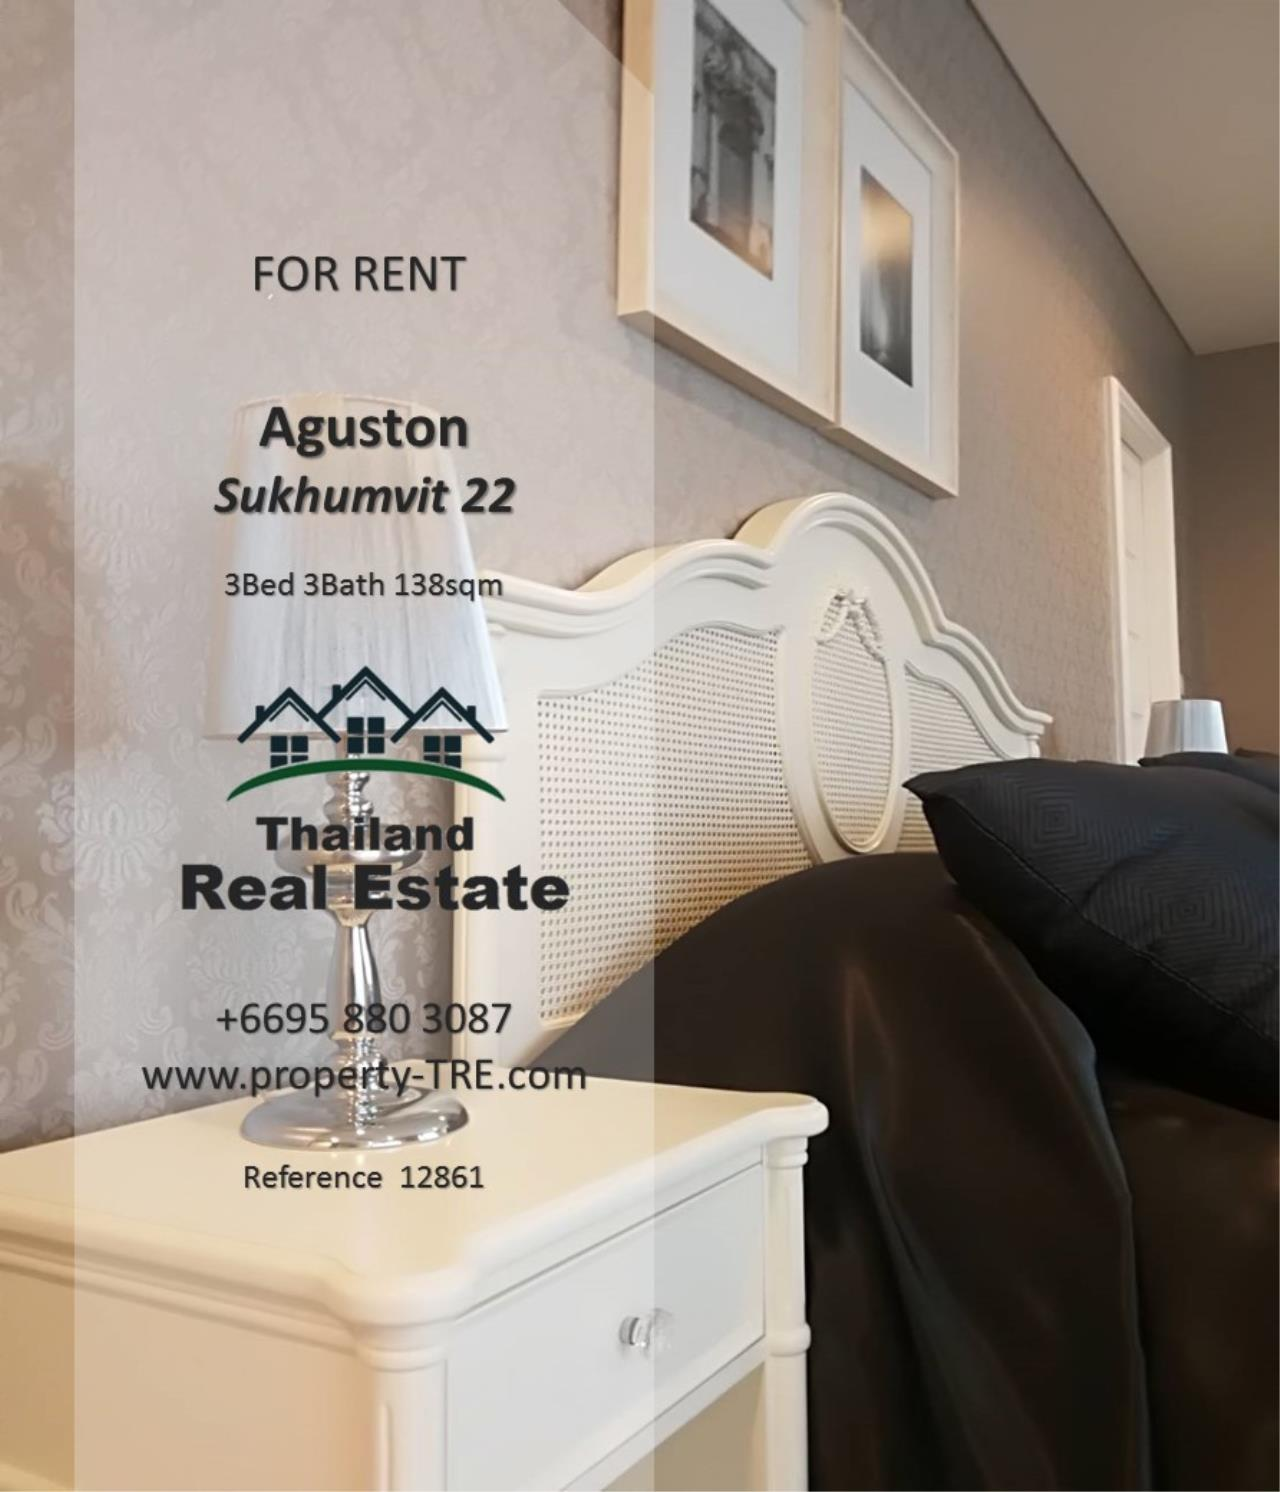 Thailand Real Estate Agency's 3 Bedroom Condo at Aguston Sukhumvit 22 near BTS Phrom Phong(12681) 7